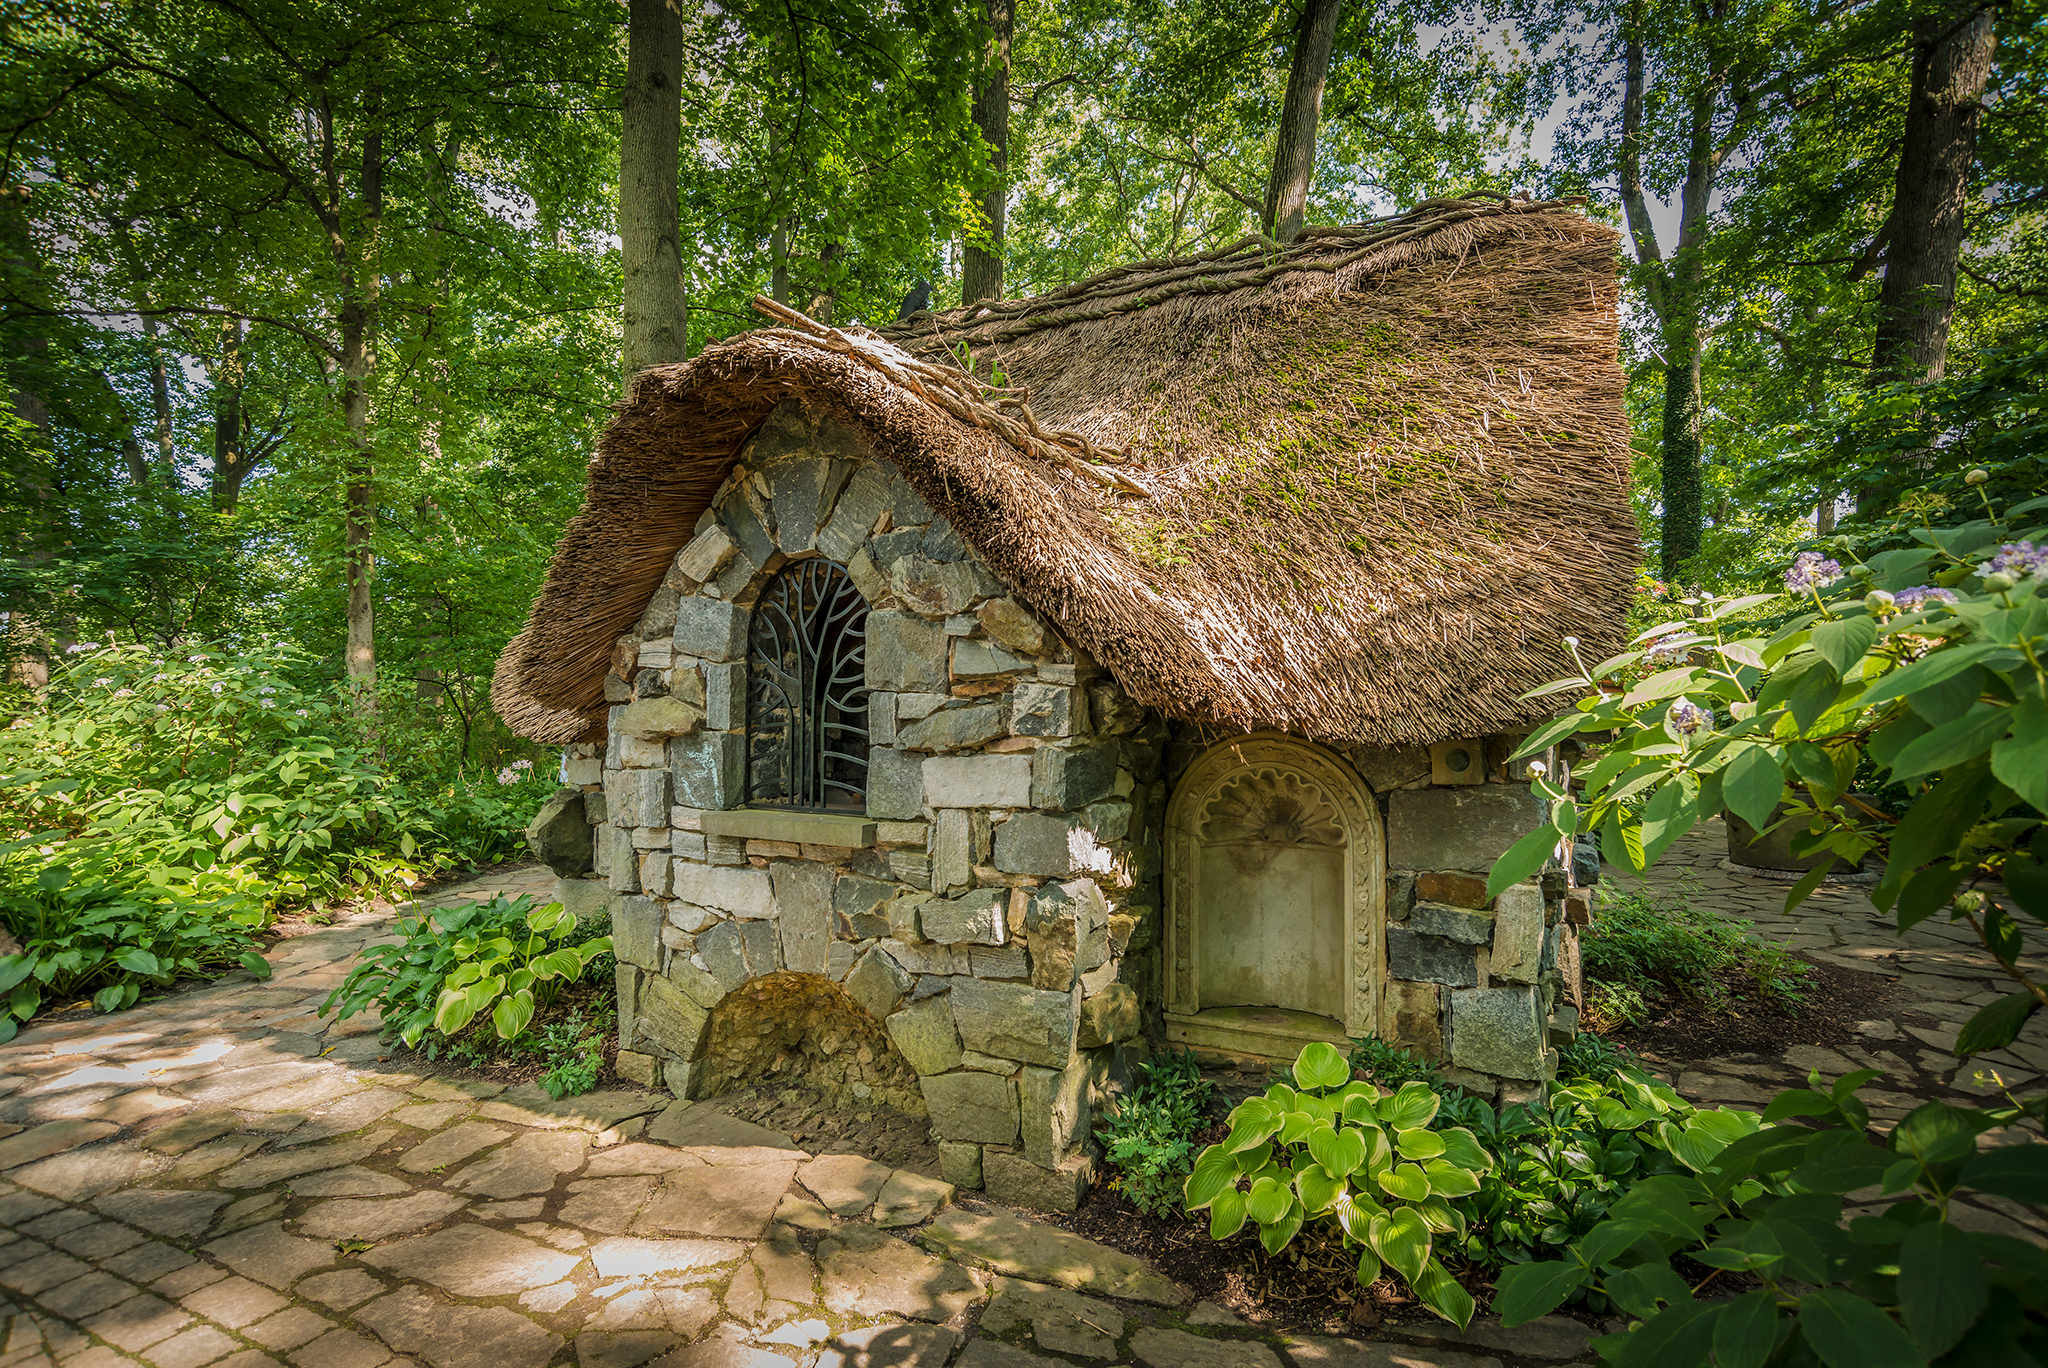 Faerie Cottage with a thatched roof in the Enchanted Woods.